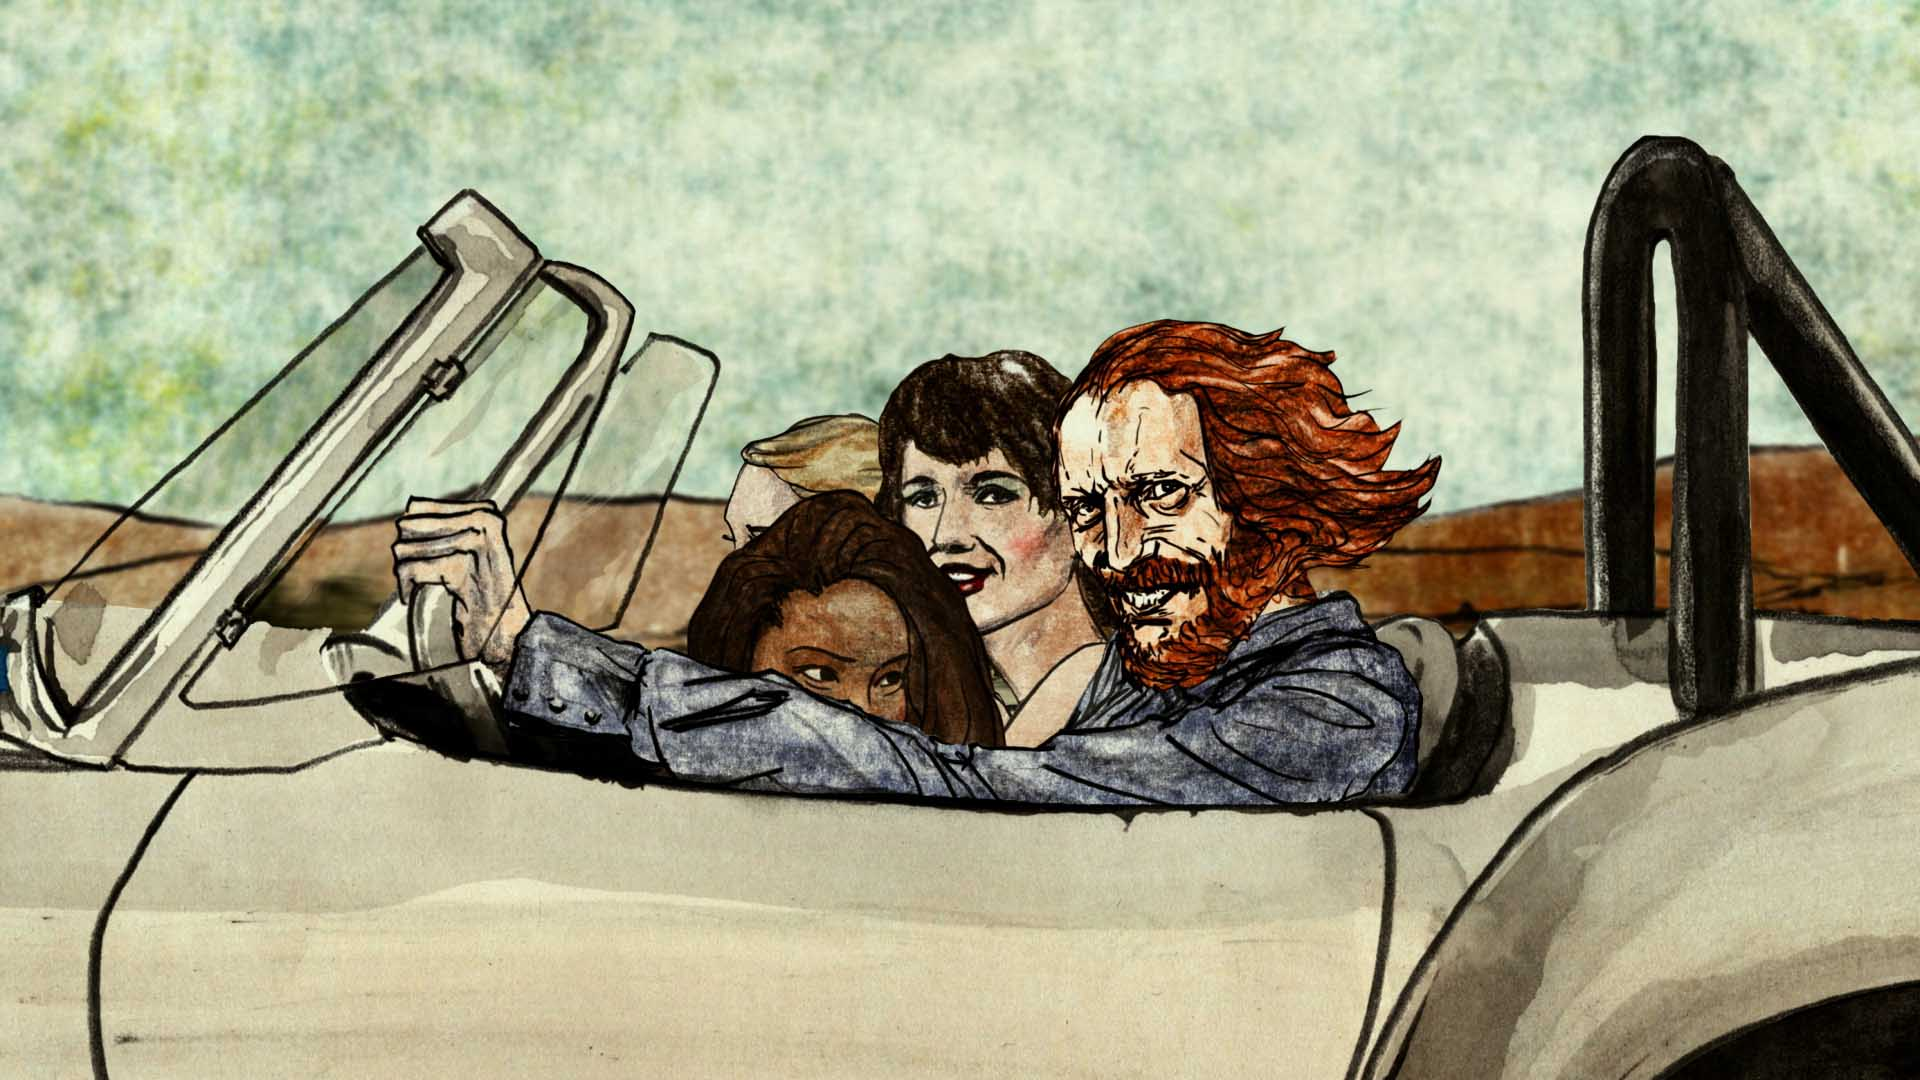 Beware-of-MR-Baker-animation-Driving.jpg